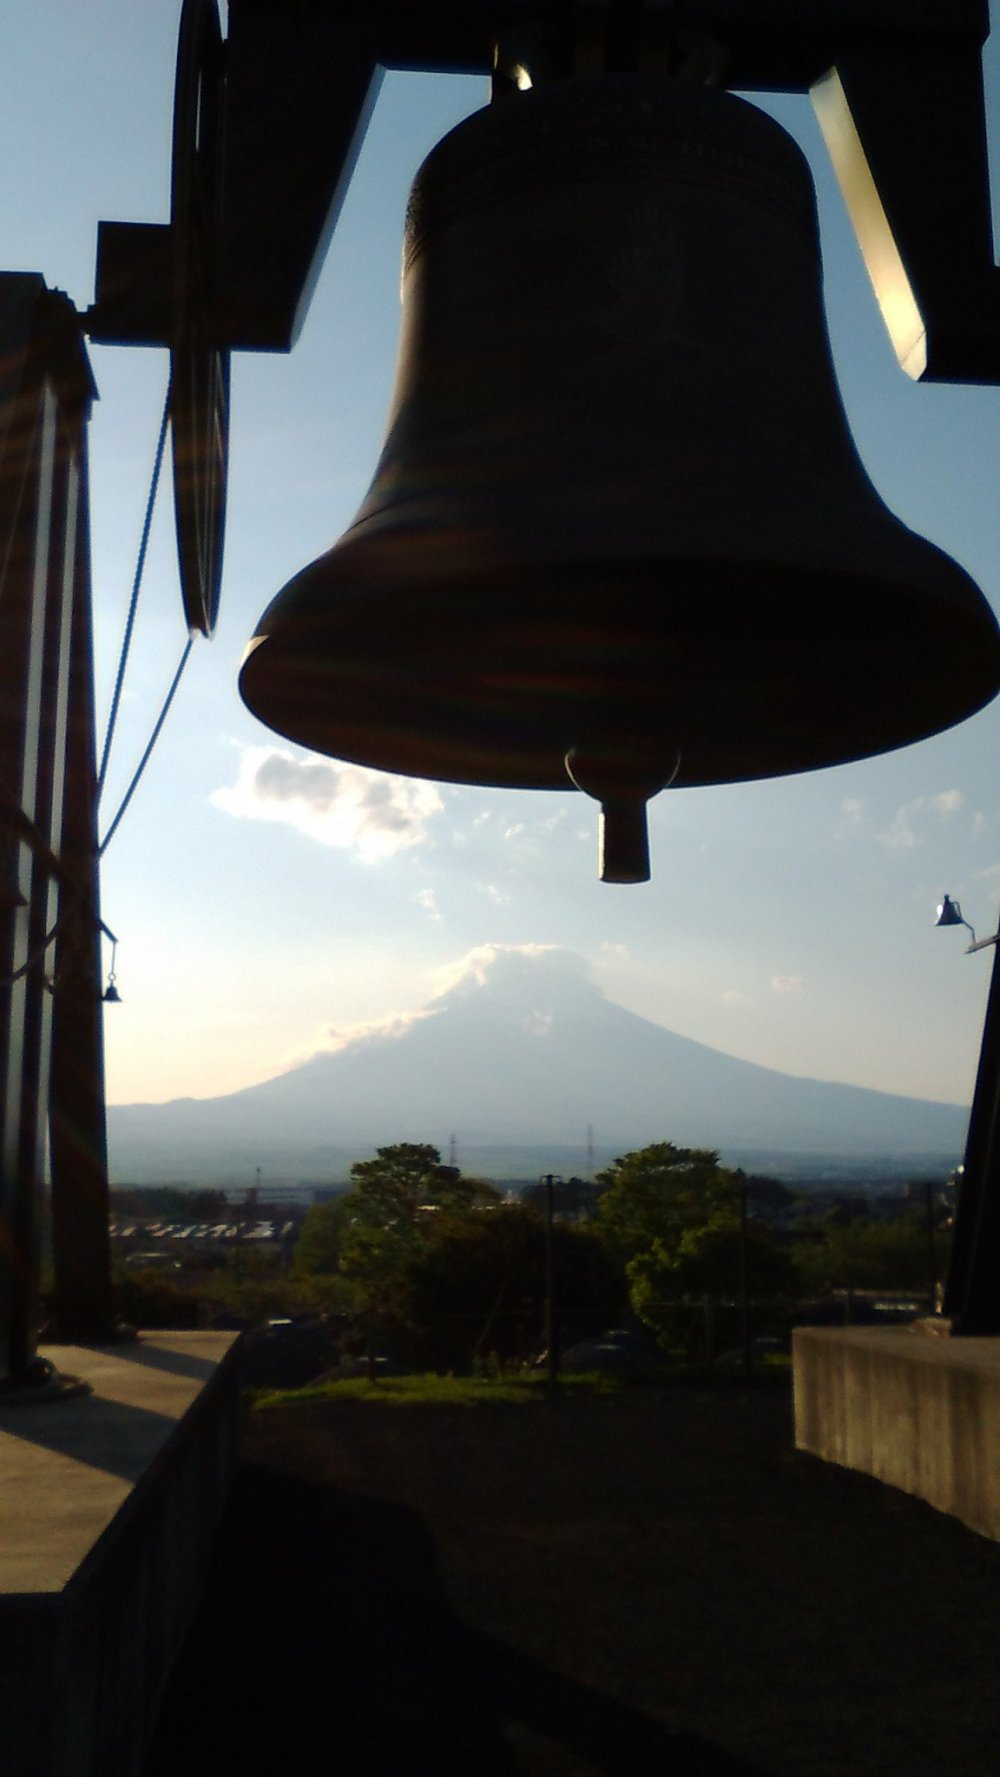 Tokinosumika is home to the third heaviest bell in Japan. You can see Mt Fuji under the bell.